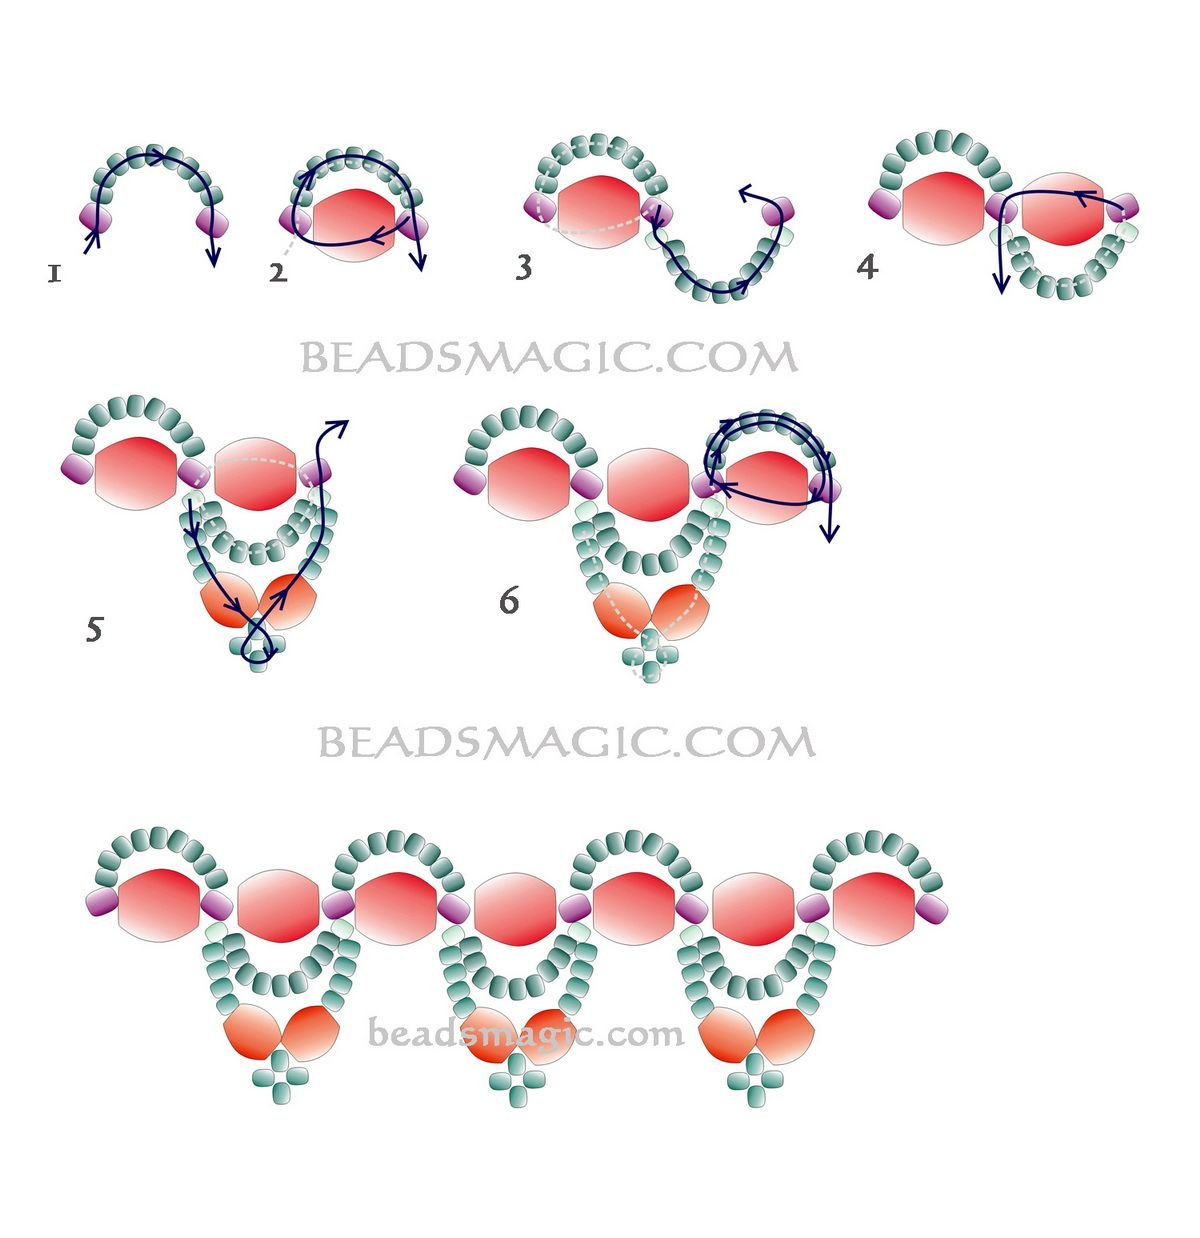 Free pattern for necklace Chantal - 2U need: faceted beads 8 mm faceted beads 6 mm seed beads 11/0 seed beads 8/0